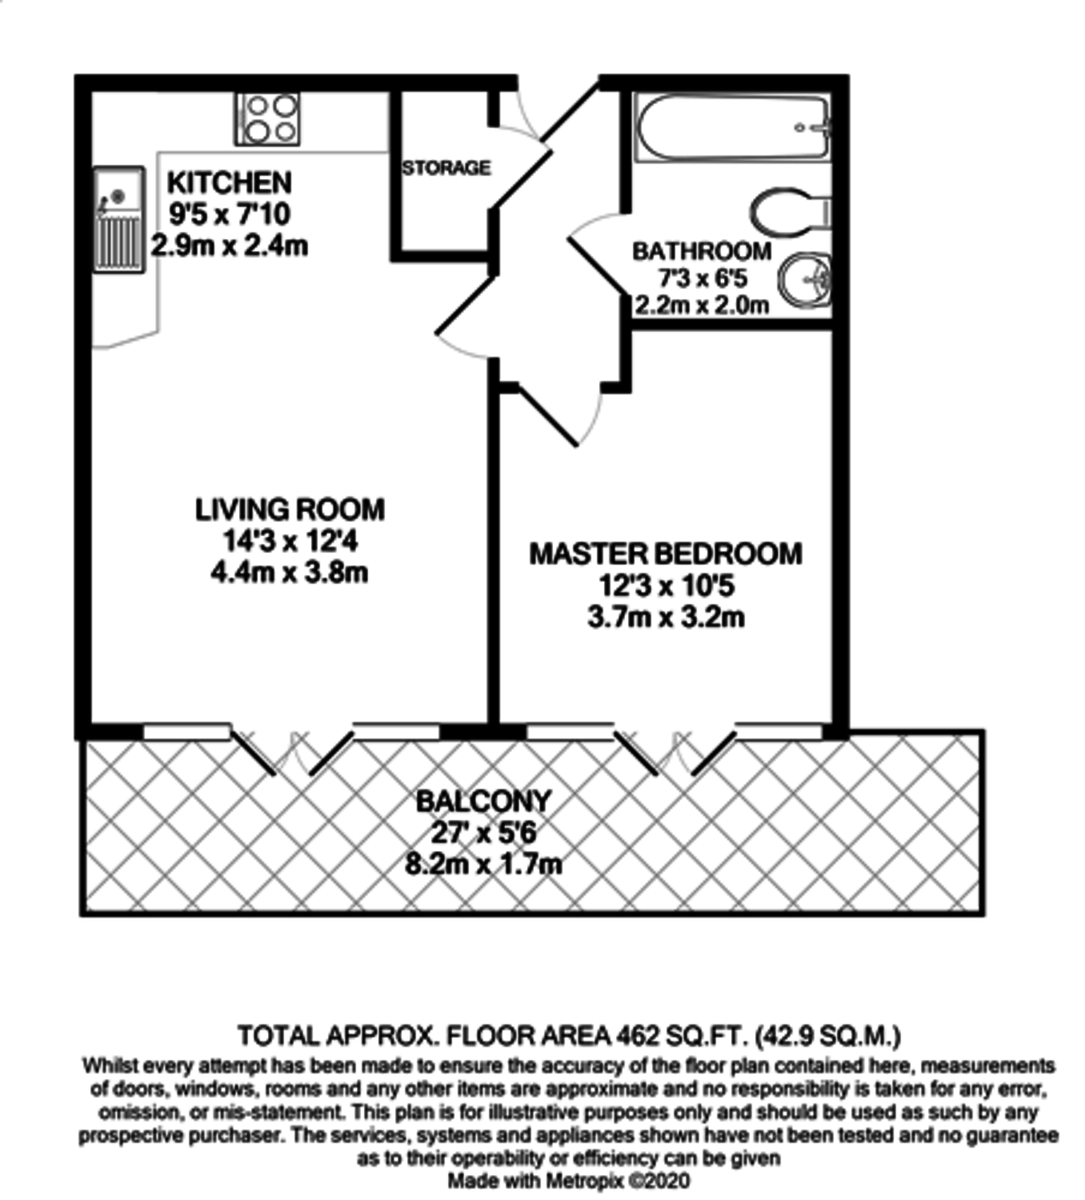 Westgate Apartments, 10 Arthur Place, Jewellery Quarter floorplan 1 of 1